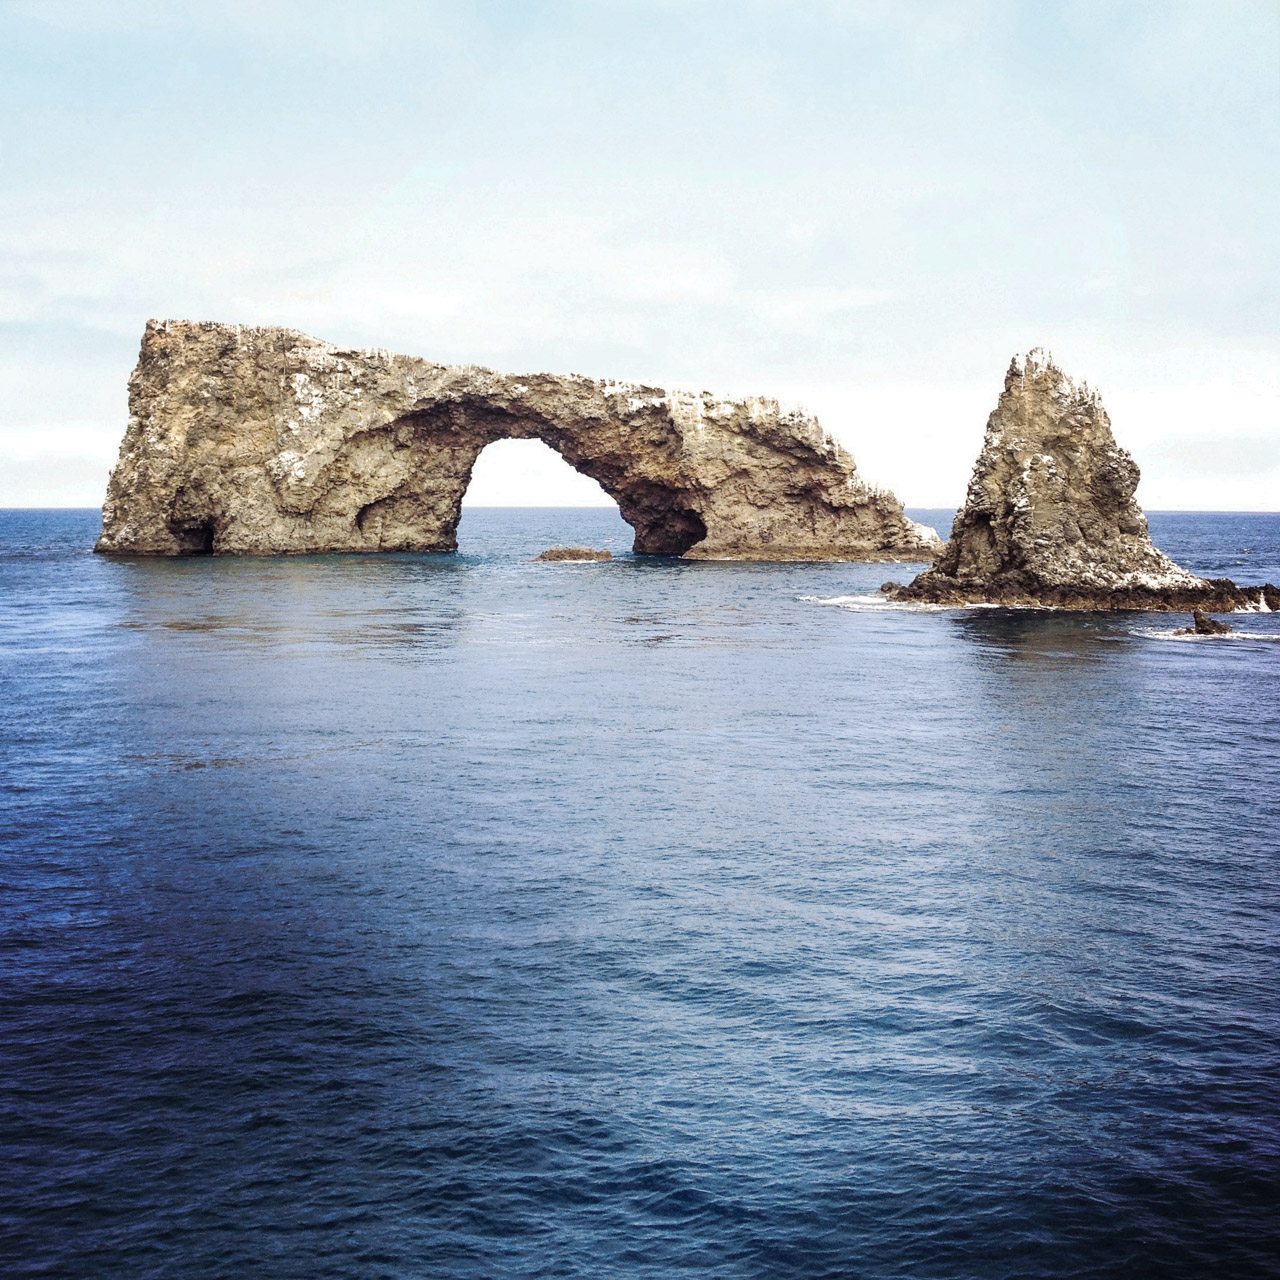 Arch Rock at the southern tip of Anacapa Island. Let's Photo Trip